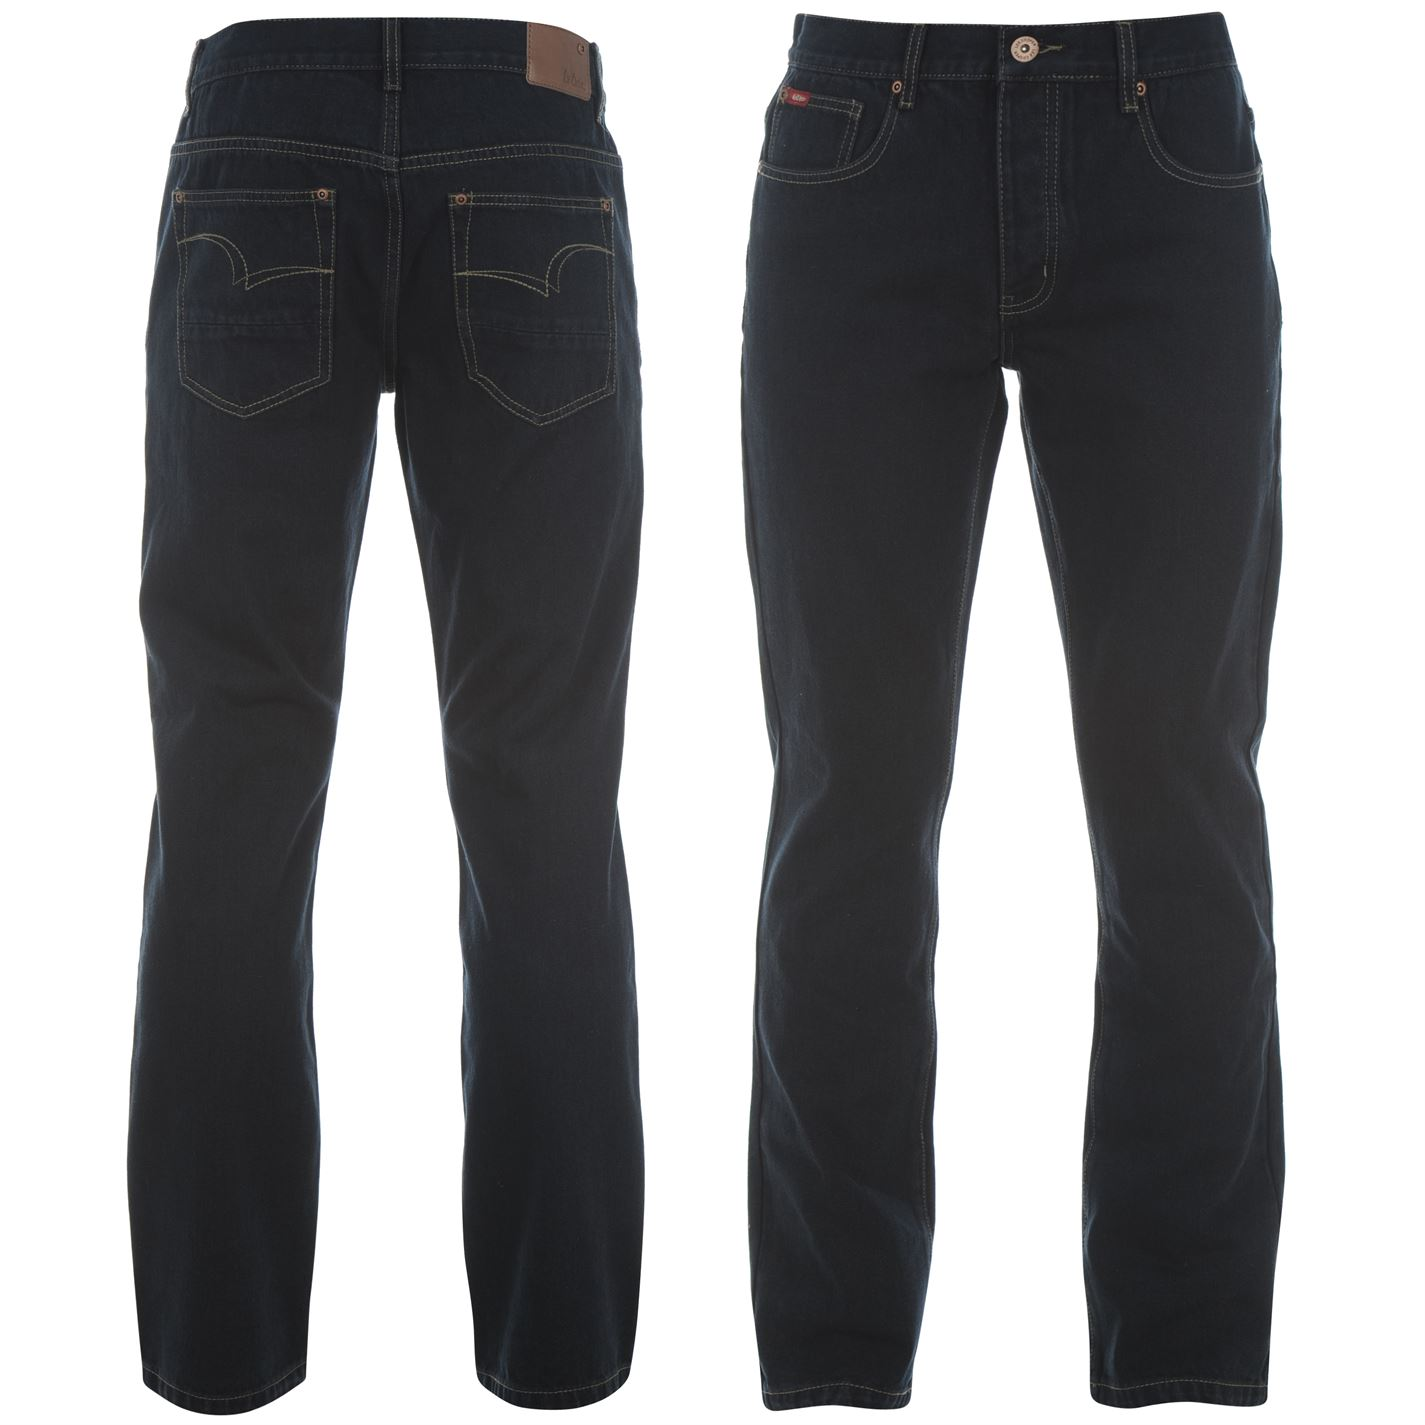 lee cooper jeans for women - photo #40